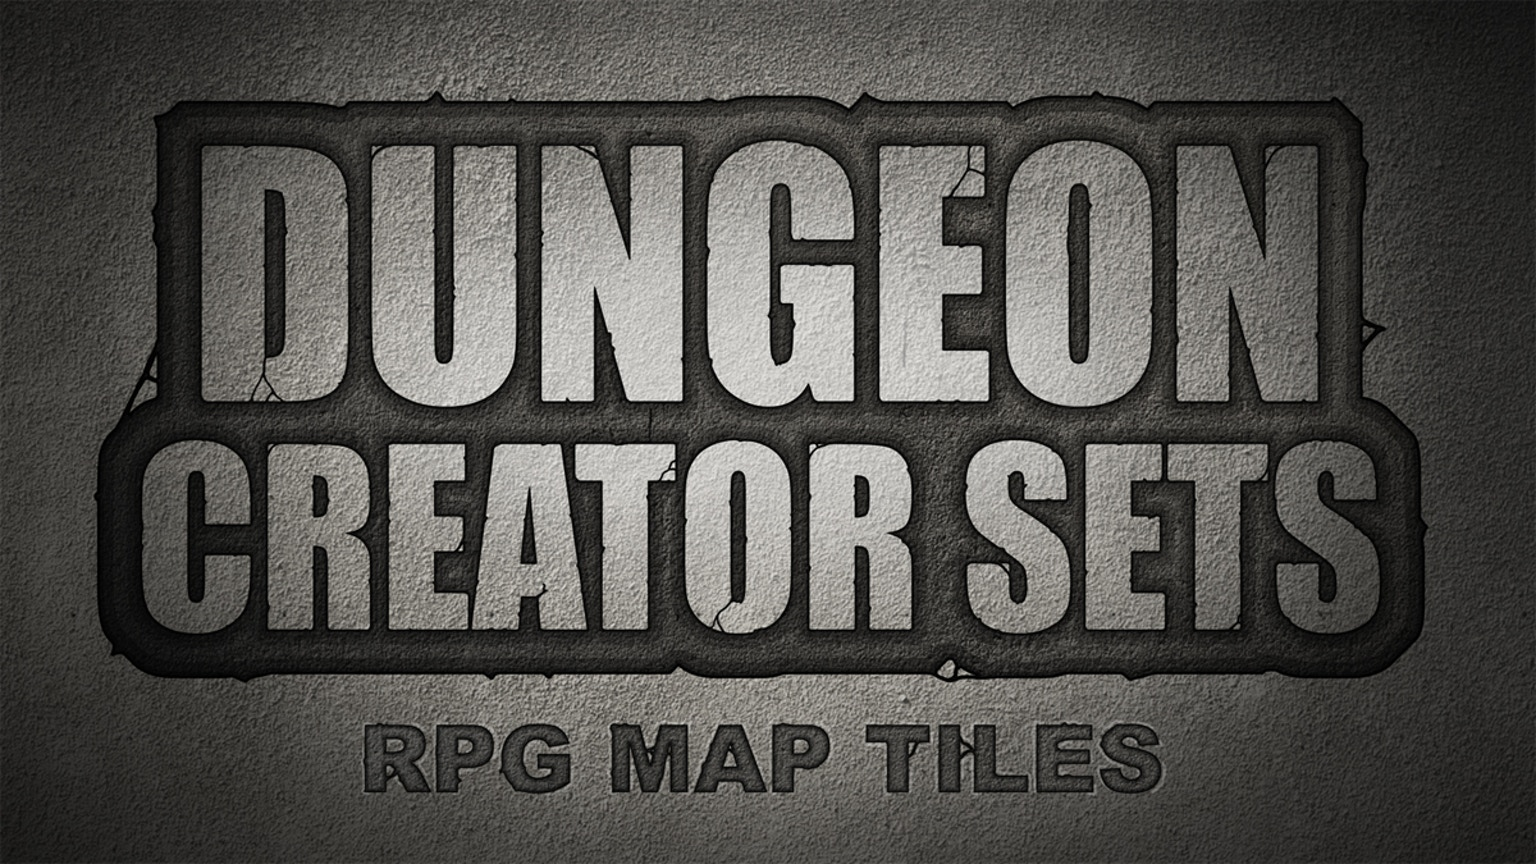 Dungeon map creator sets 5x5 fantasy and rpg map tiles for Dd 2927